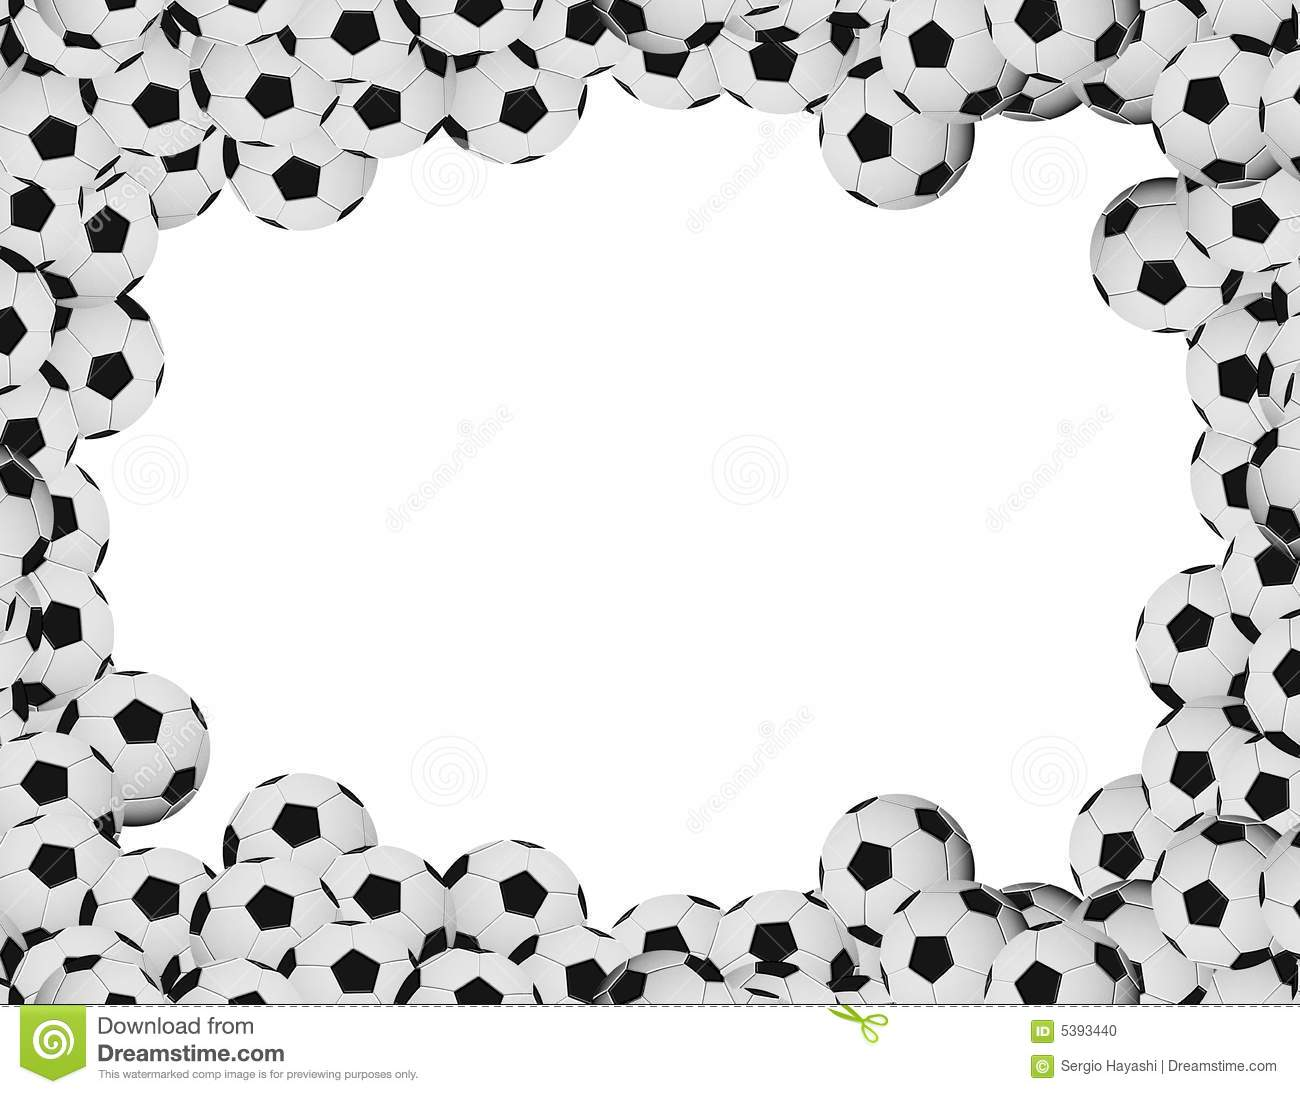 Soccer frame stock illustration. Illustration of sphere - 5393440